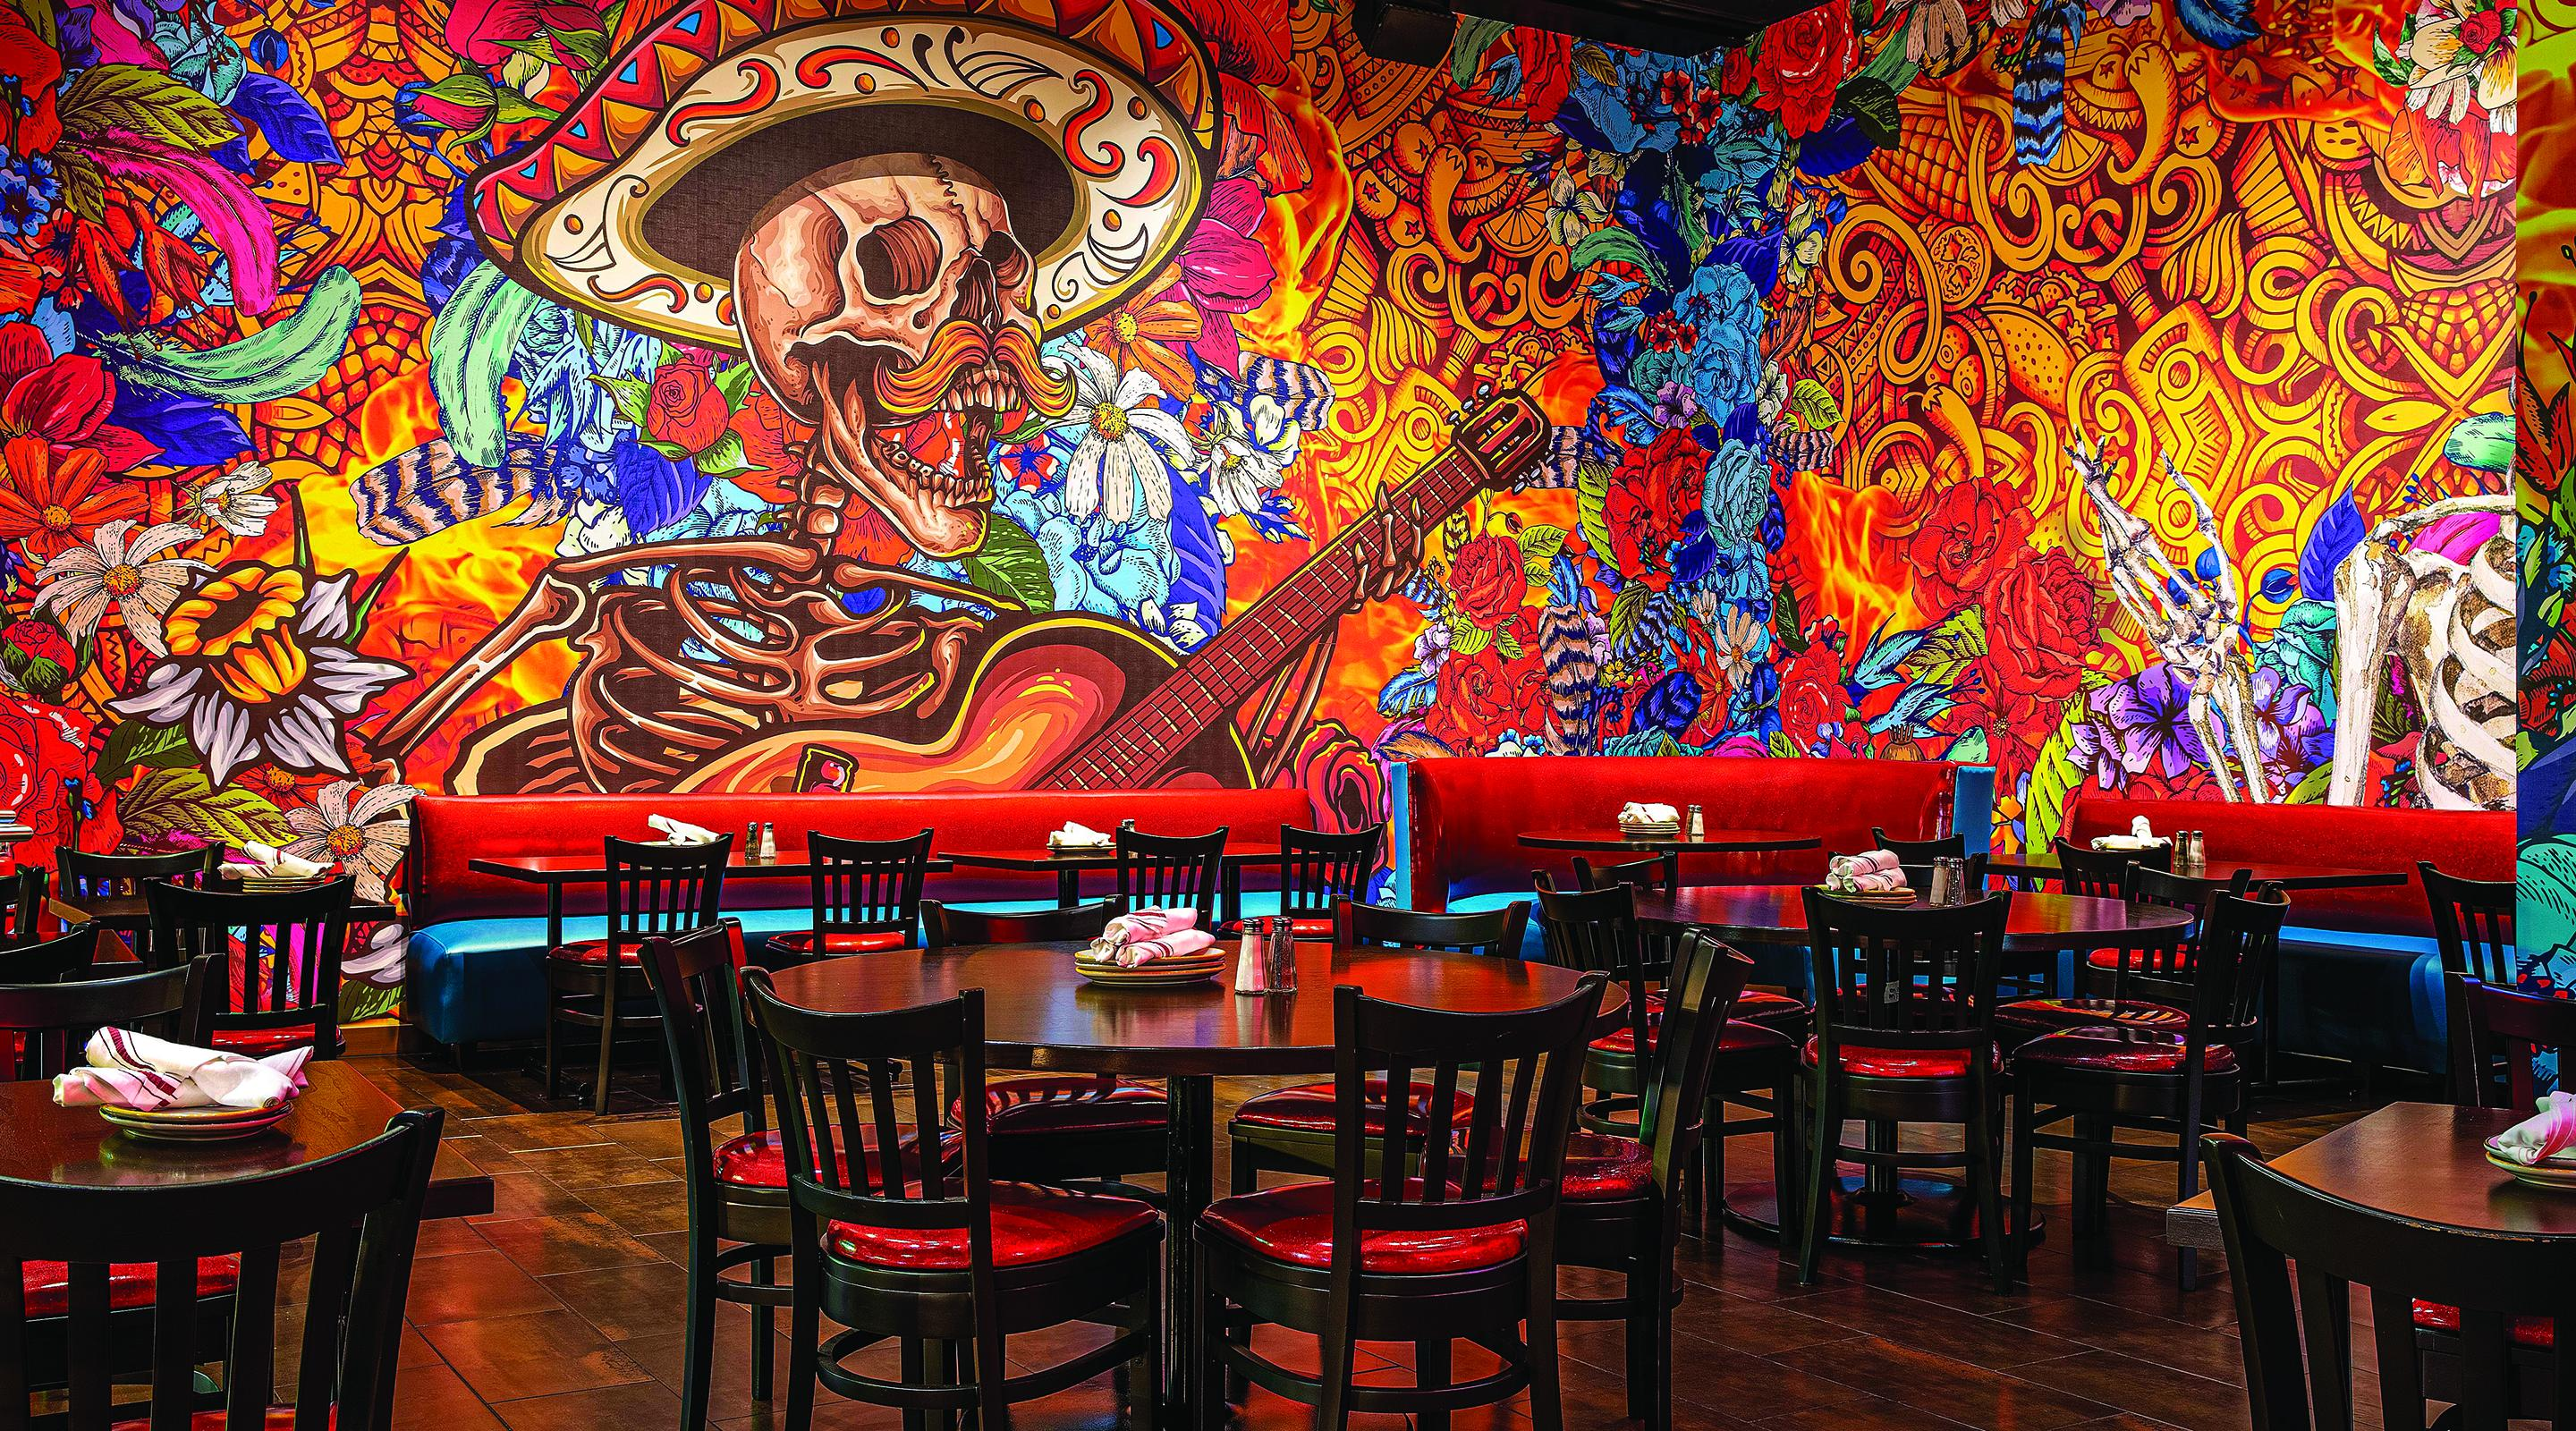 A large scale wall mural inside Diablo's Cantina.